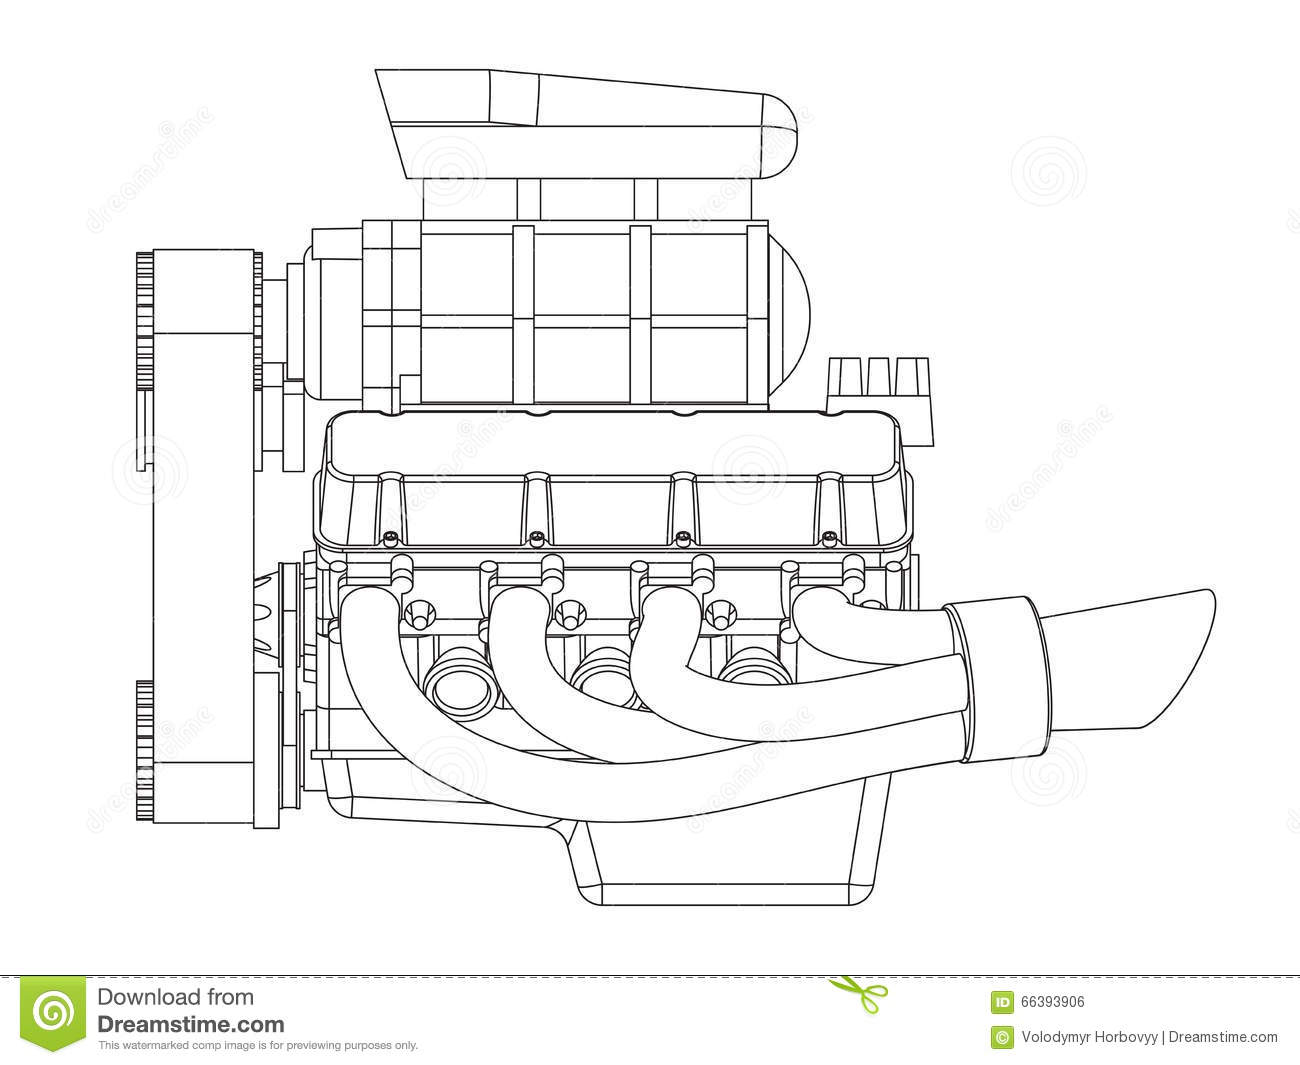 Engine Block Schematics